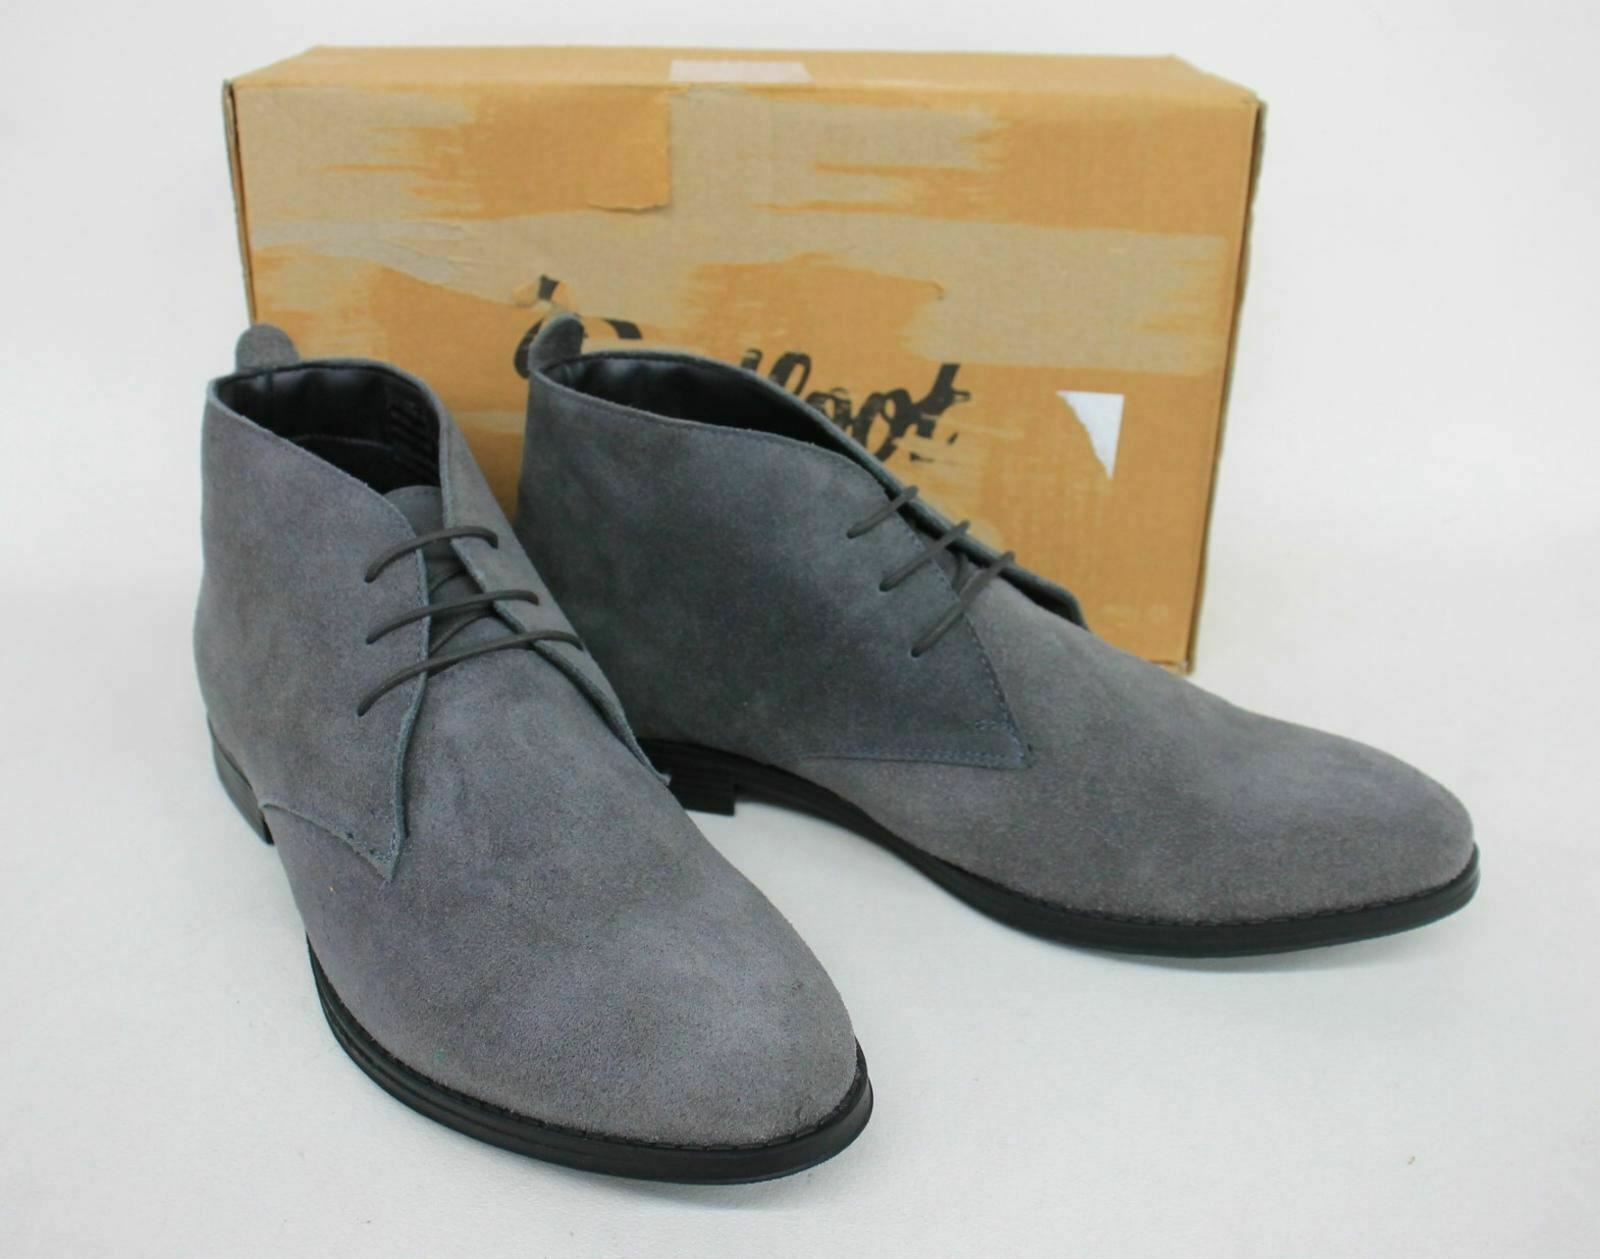 REDFOOT Men's Grey Suede Lace-Up Almond Toe Desert Ankle Boots UK11 EUR45 NEW